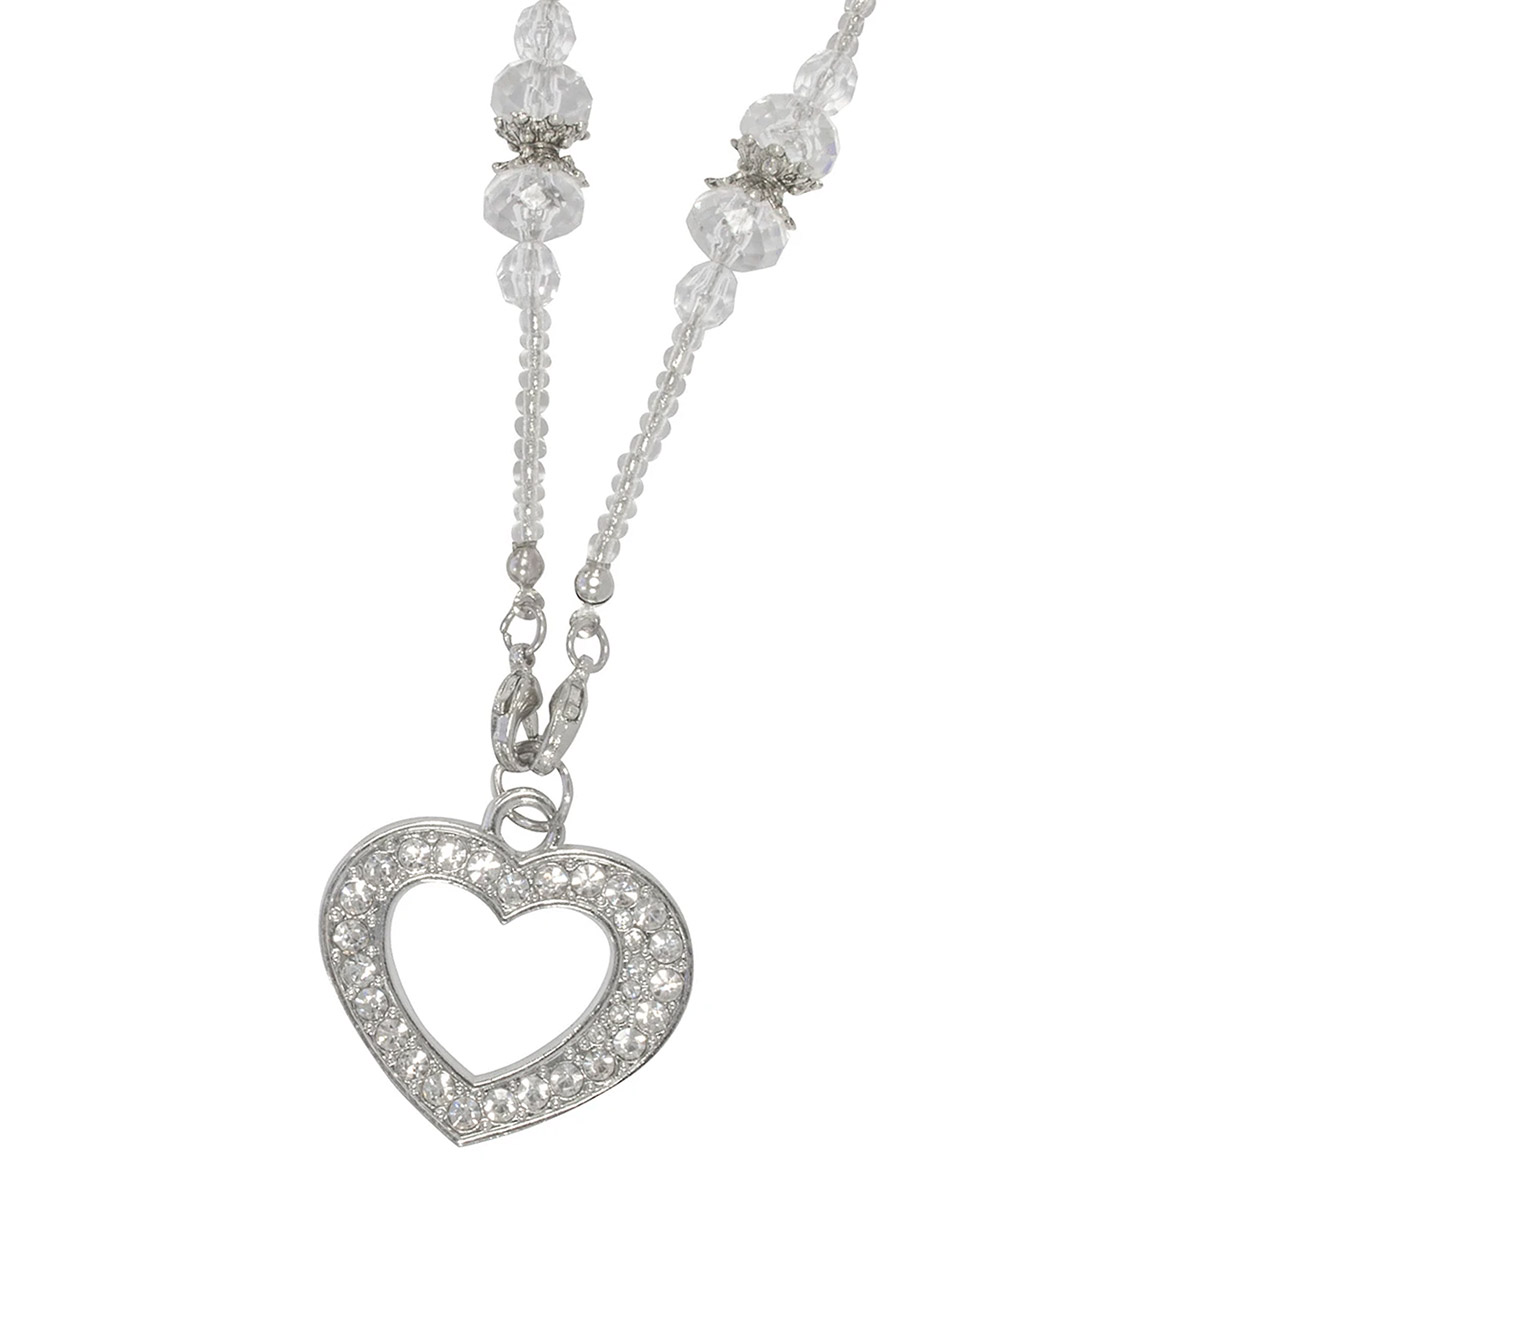 Main Image (Angle) - Candy (Silver) Glasses Chains Accessories